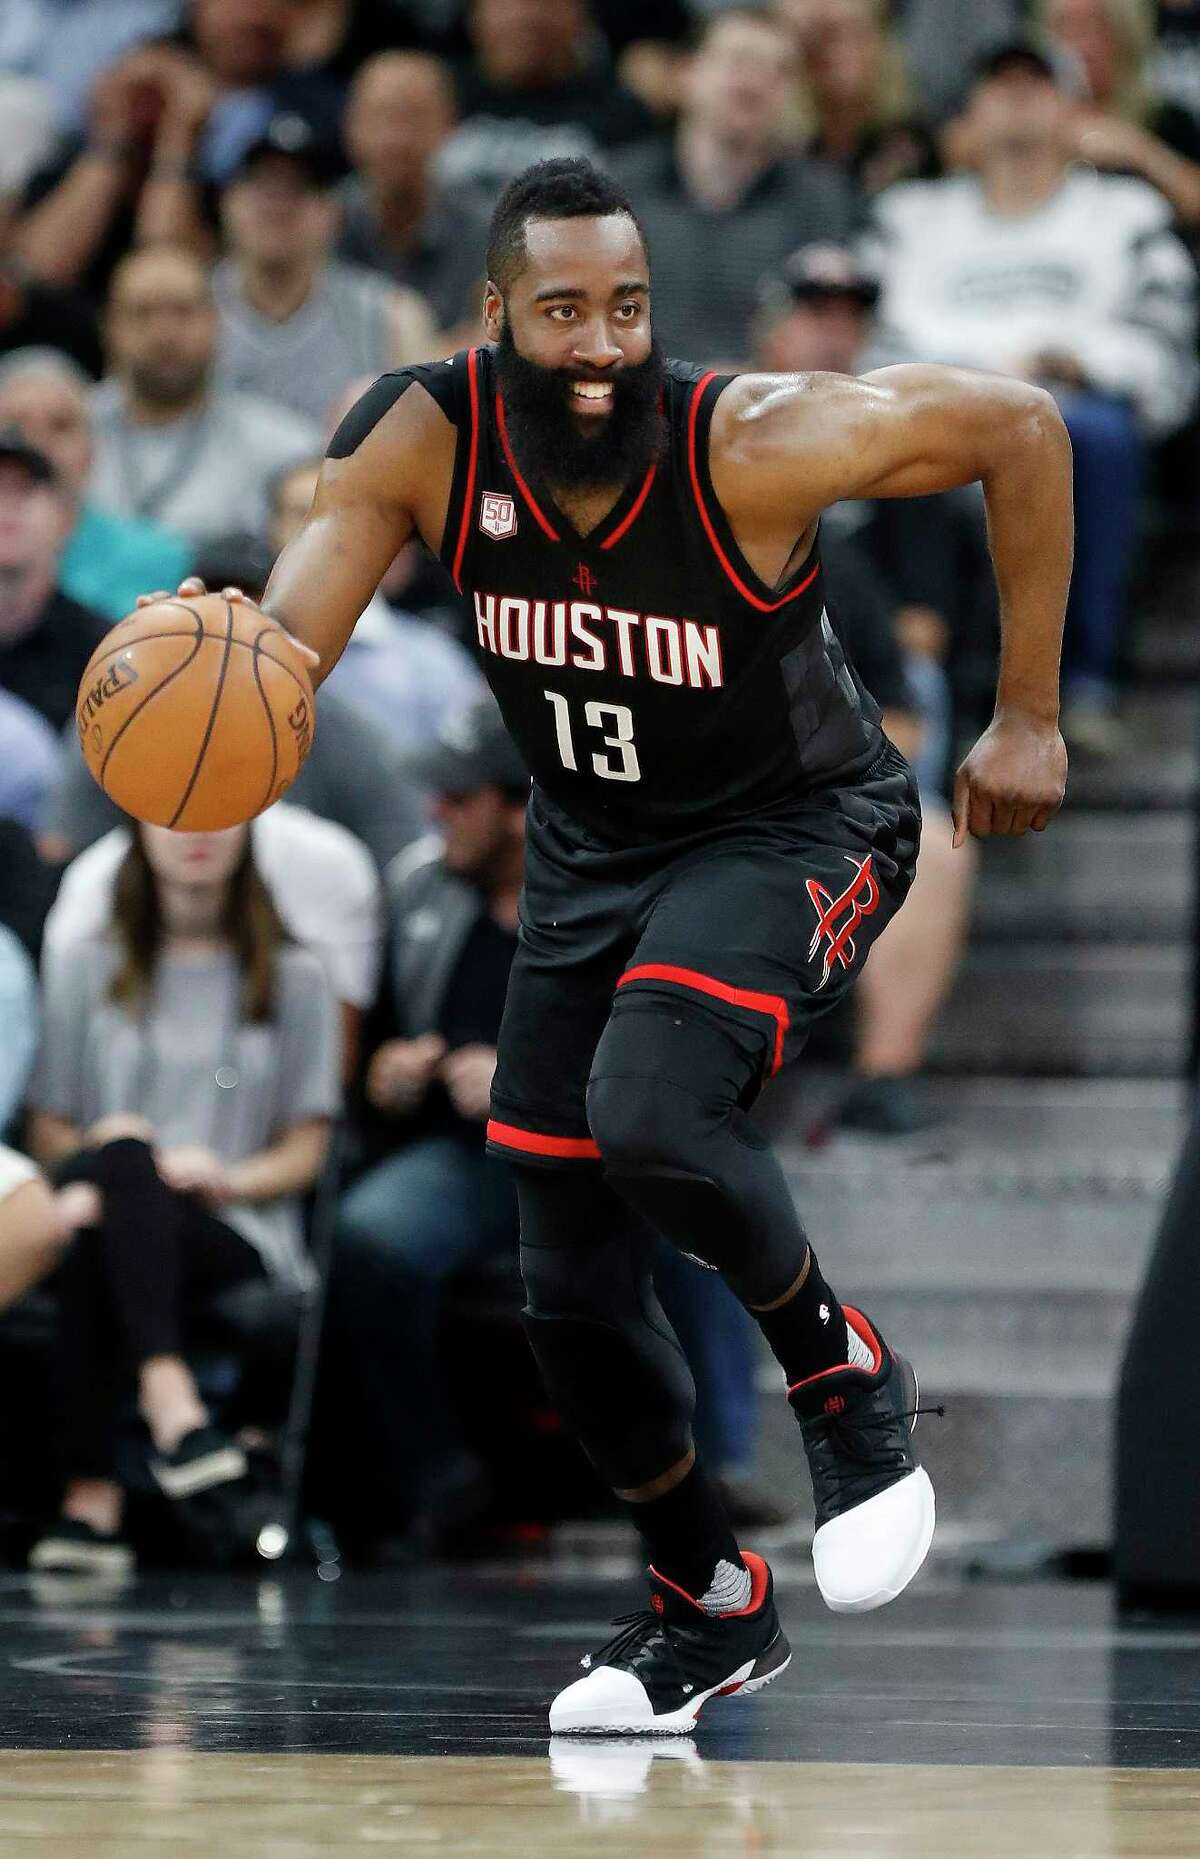 James Harden's 6-year, $228 million contract extension will keep him with the Rockets through the 2022-23 season.